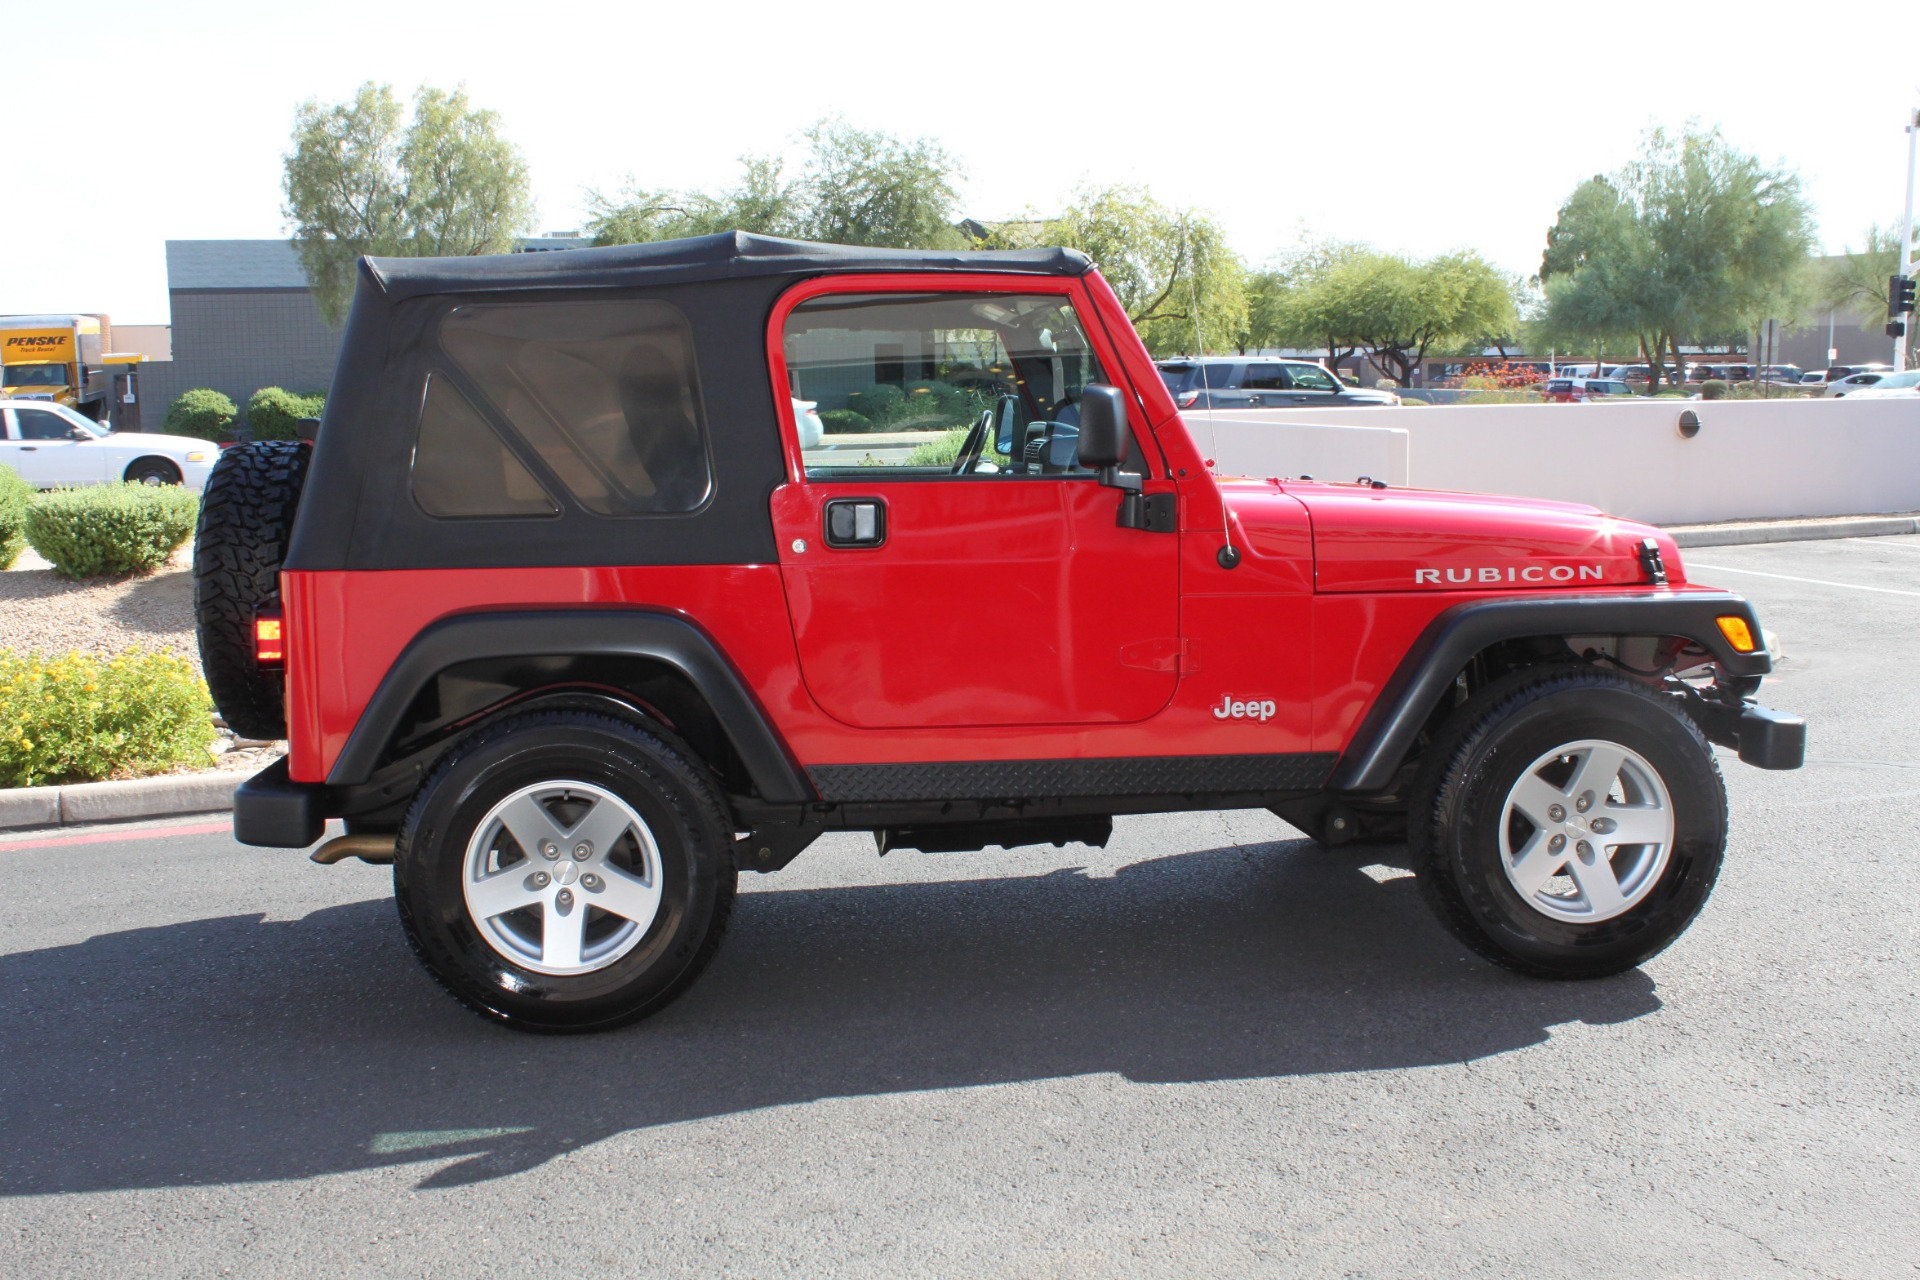 Used-2006-Jeep-Wrangler-Rubicon-Chrysler